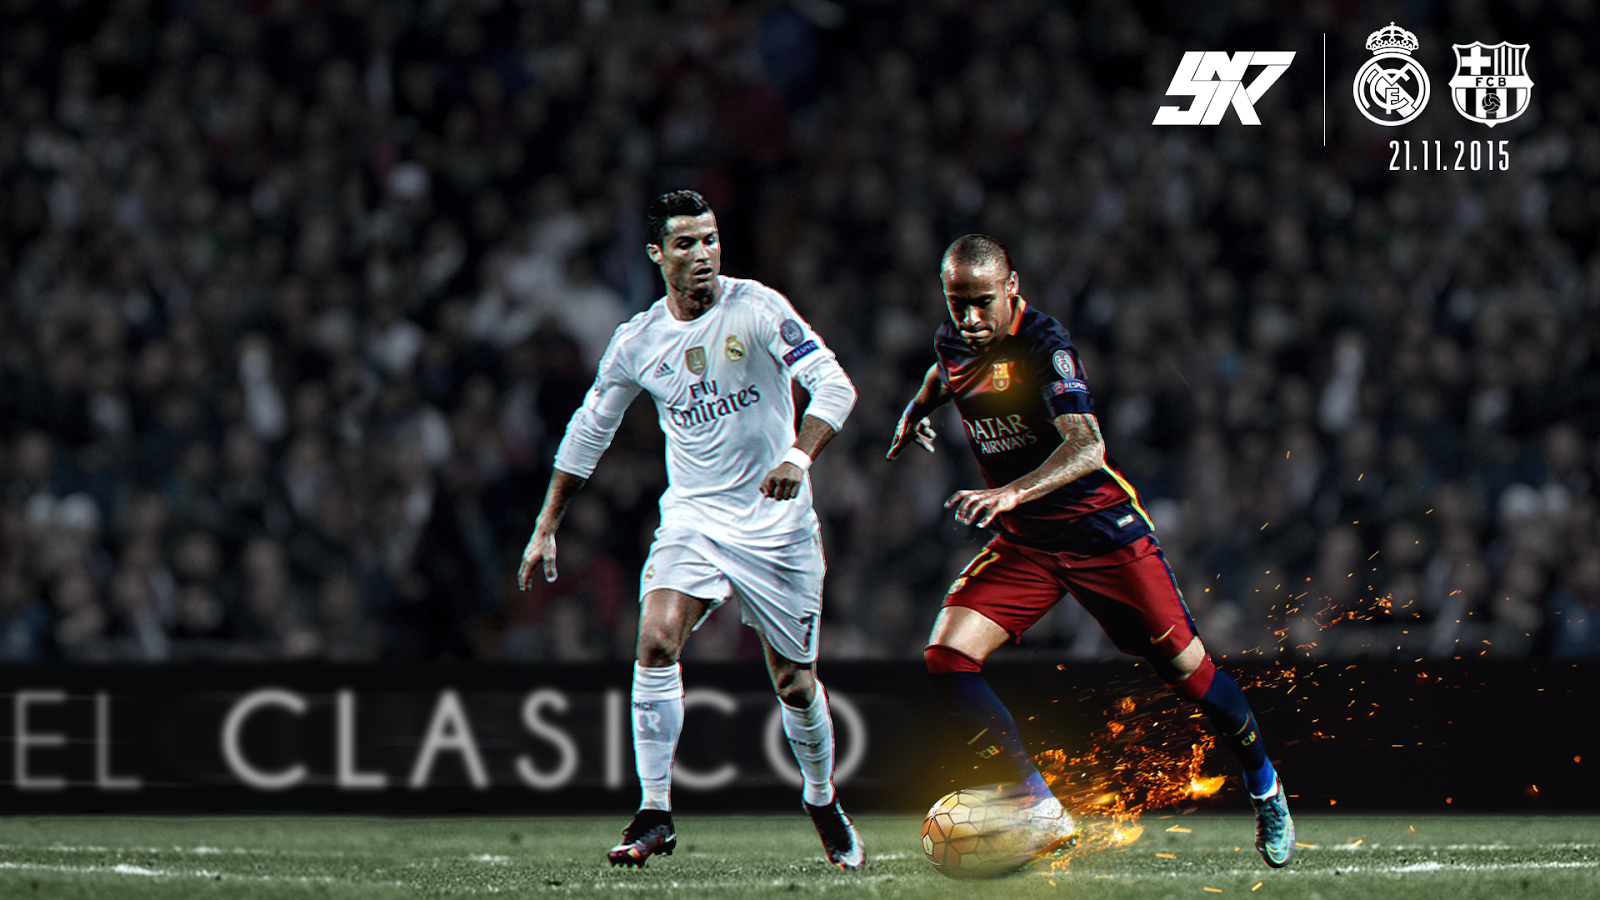 El Clasico Hd Images 2 El Clasico Hd Images Pinterest Hd Images